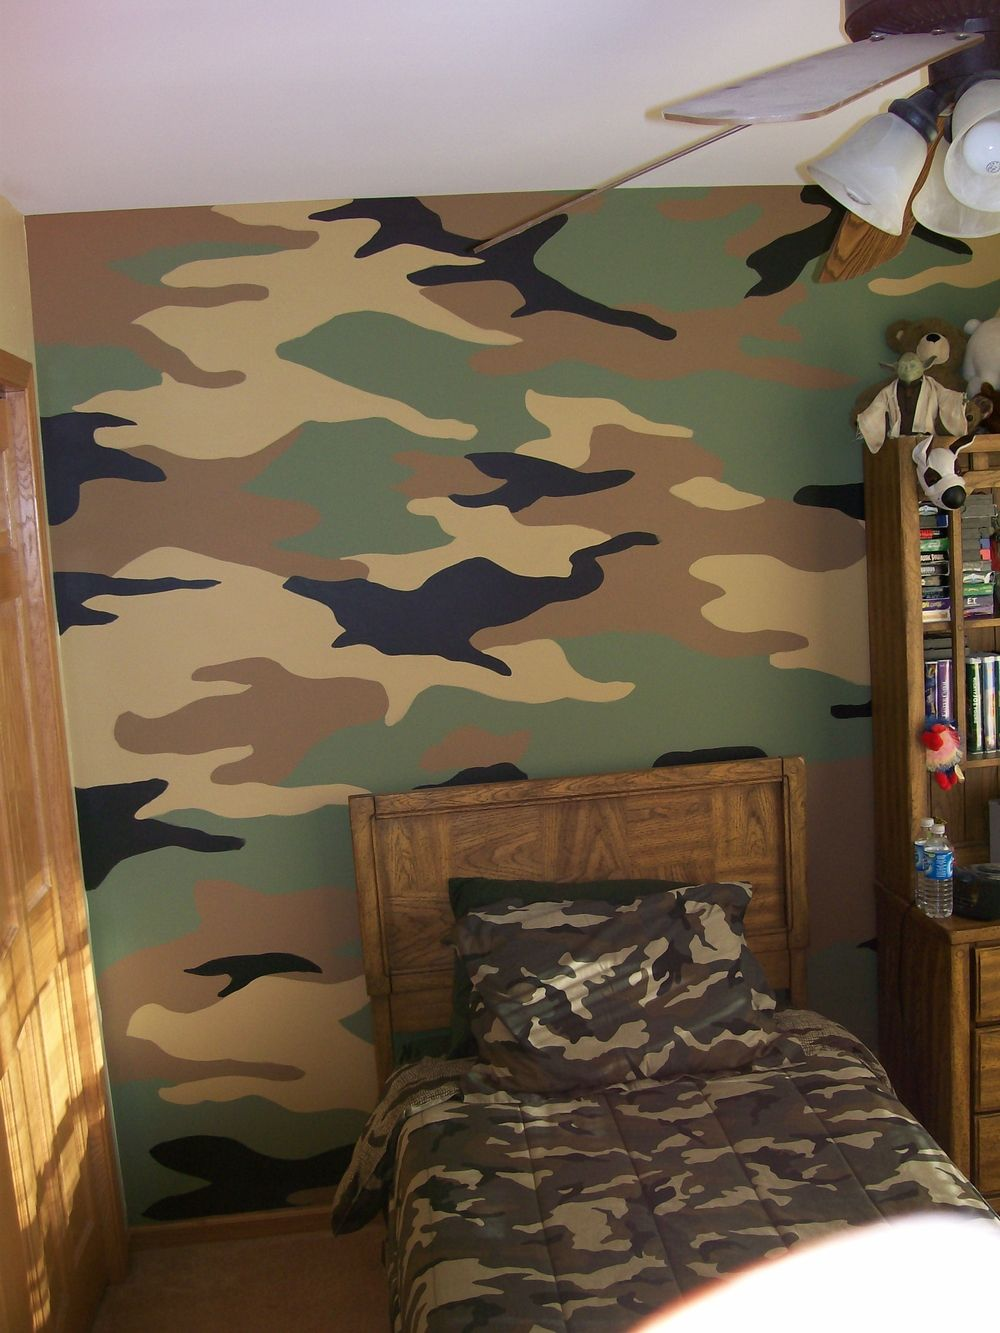 Camouflage Wall Mural Decorative Painting By Karl